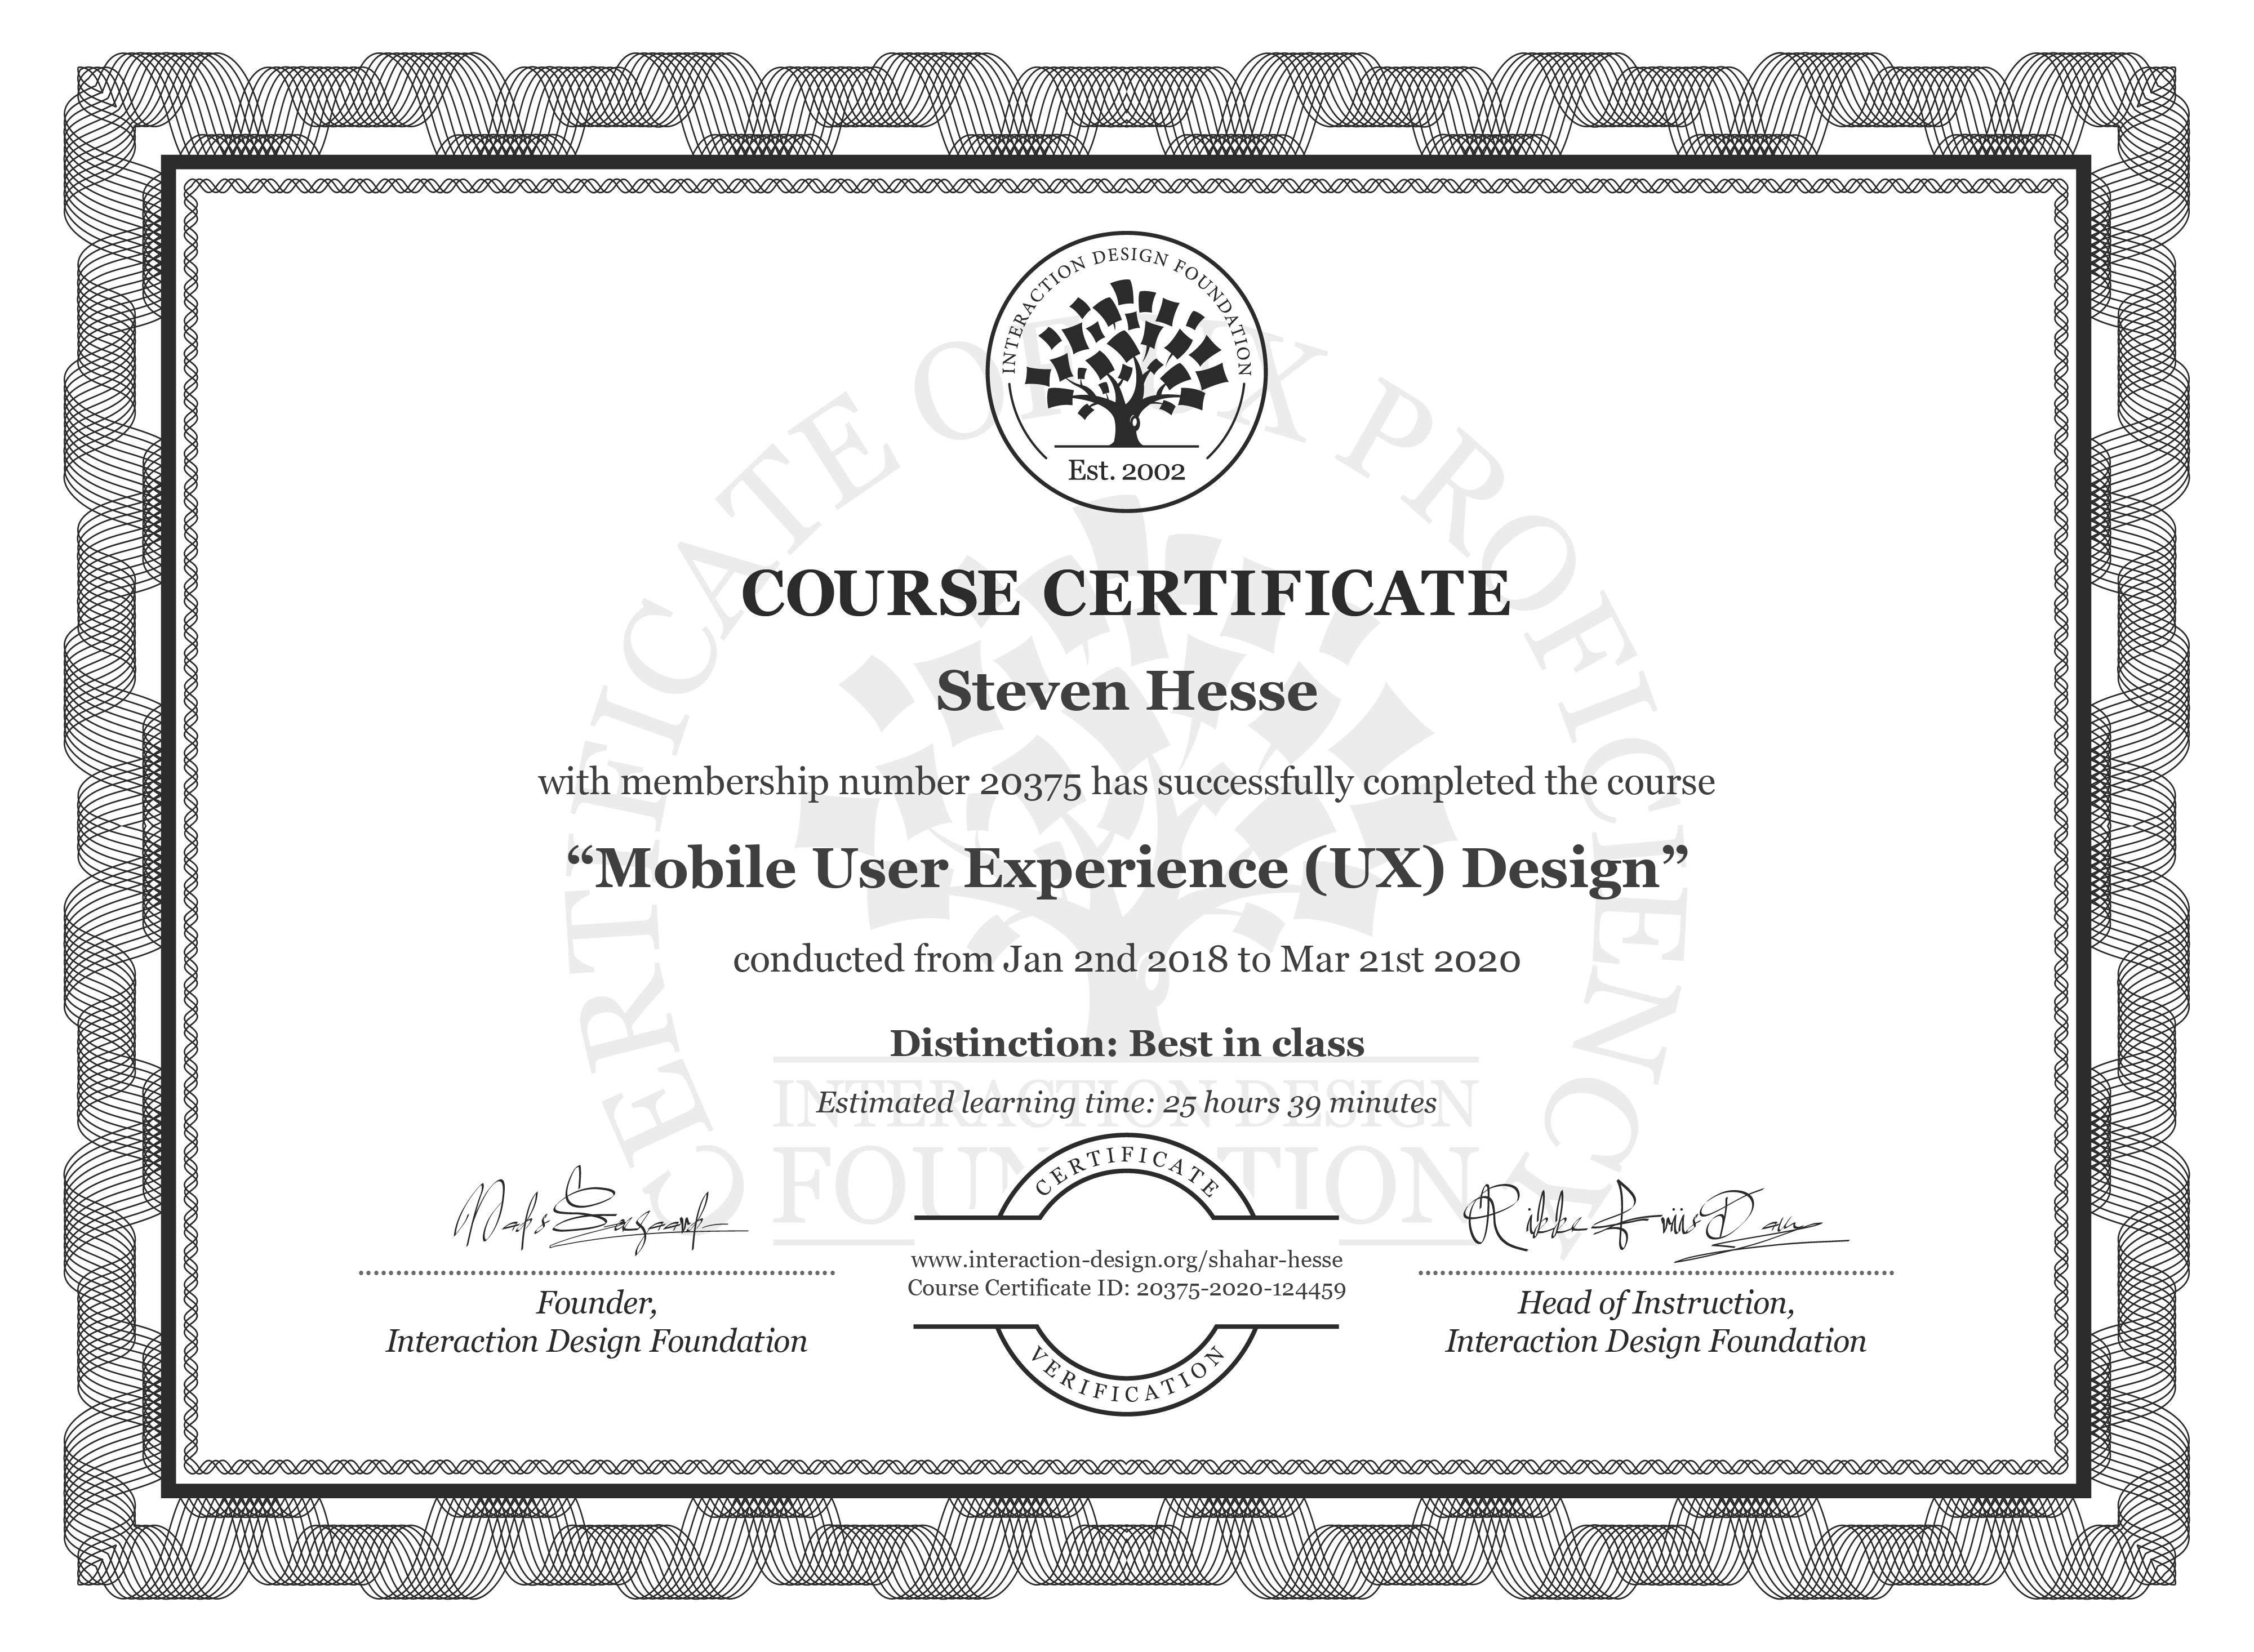 Steven Hesse's Course Certificate: Mobile User Experience (UX) Design